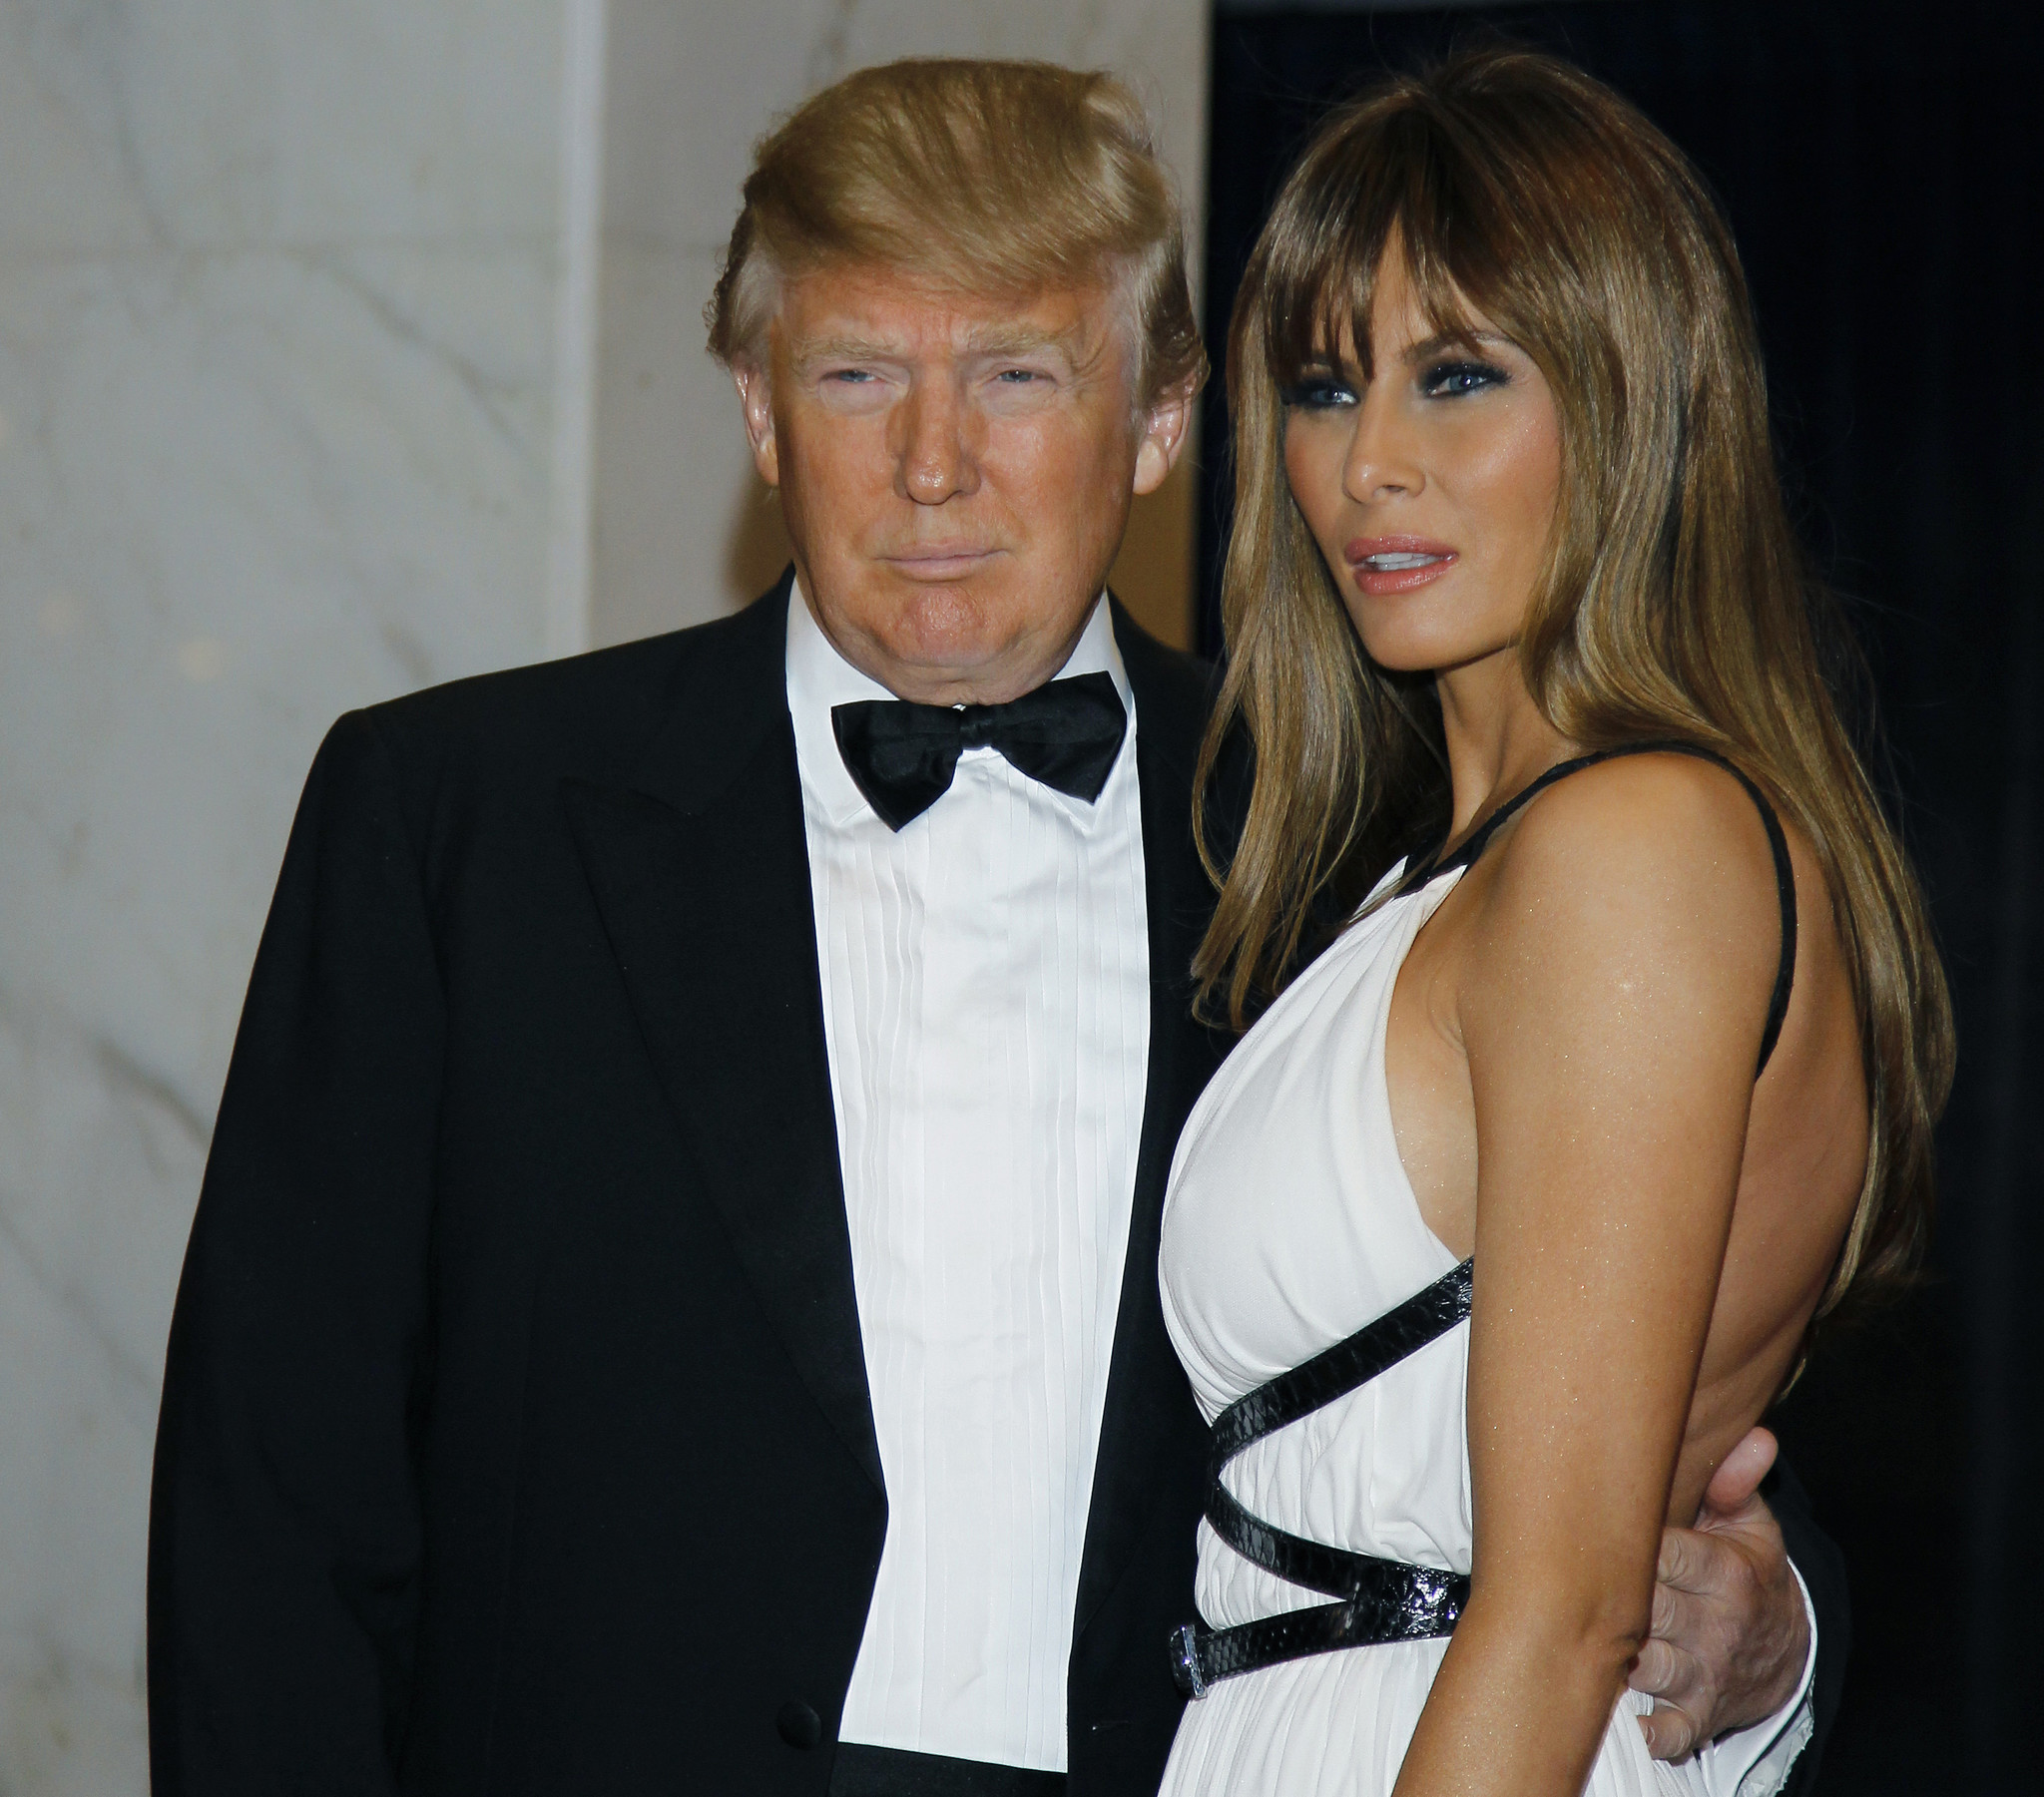 Did The 2011 White House Correspondents' Dinner Spur Trump